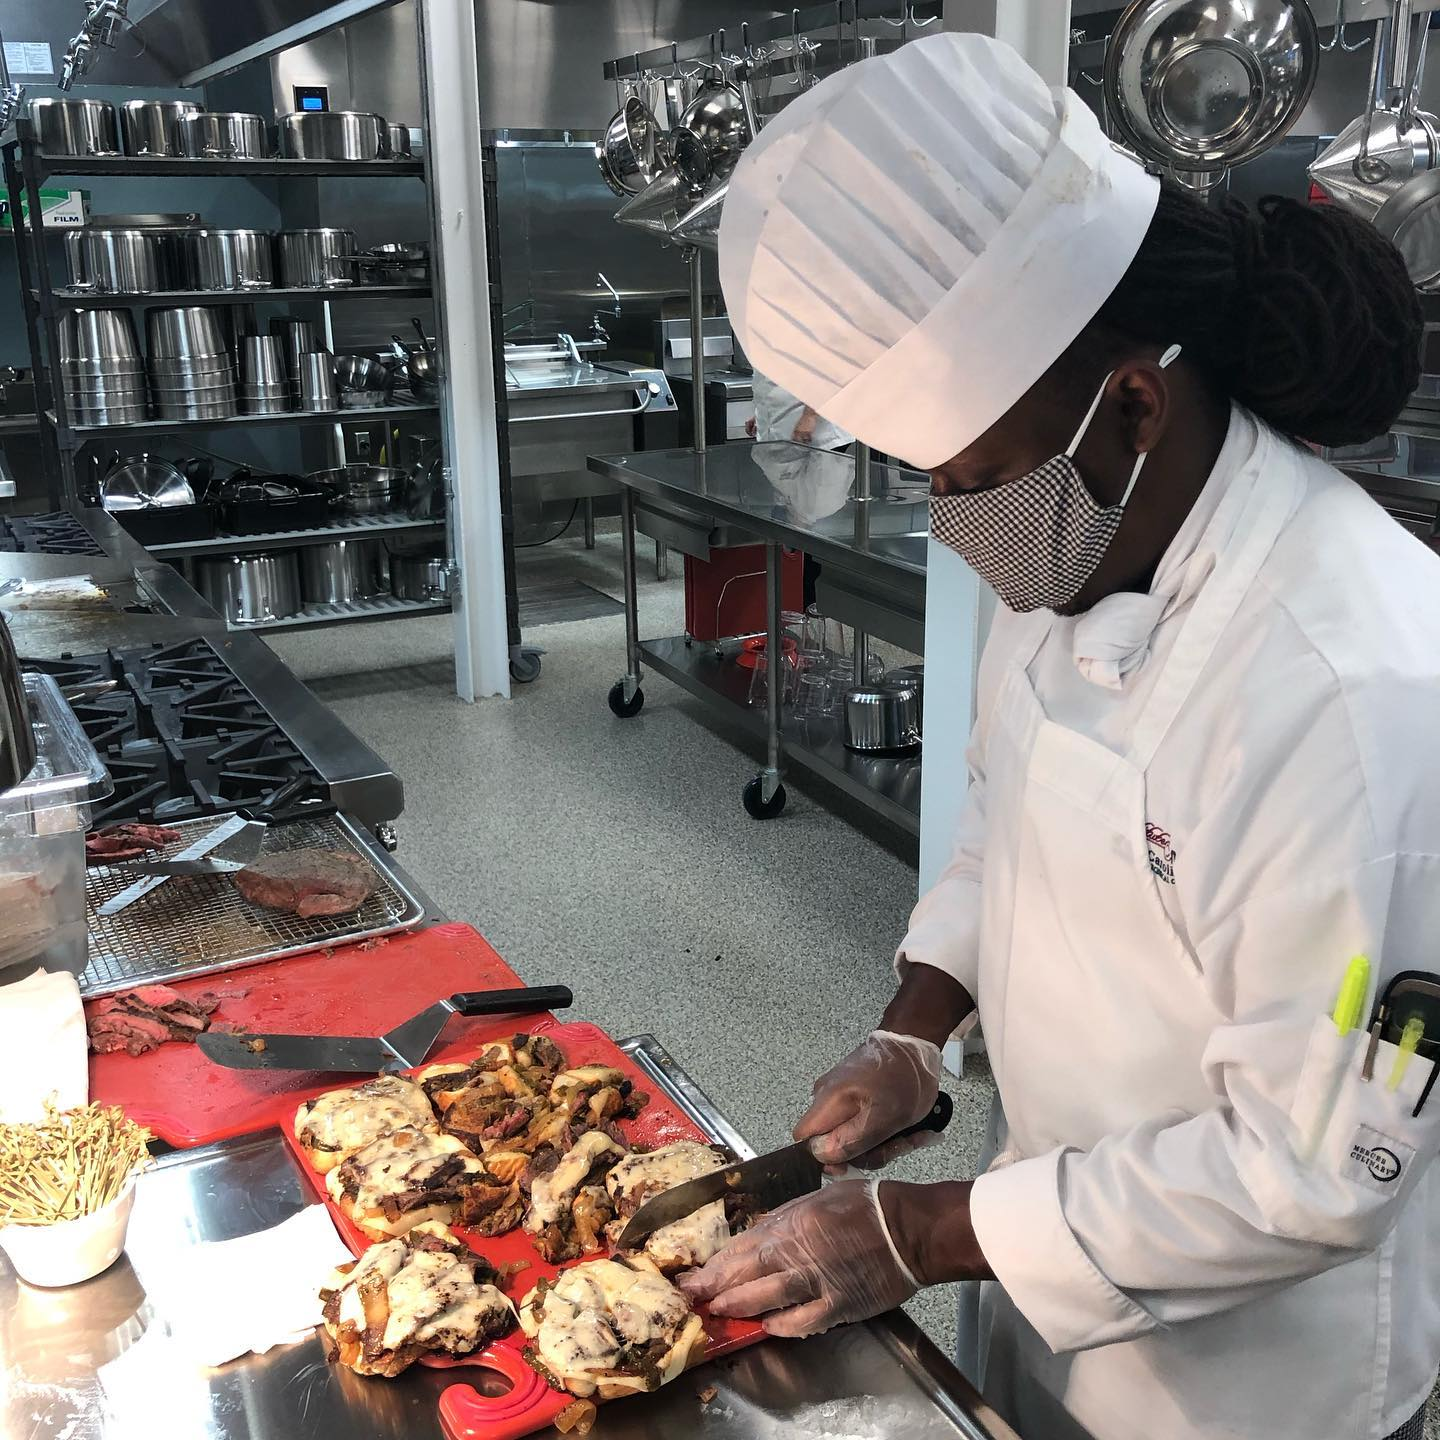 Student chef plating a dish